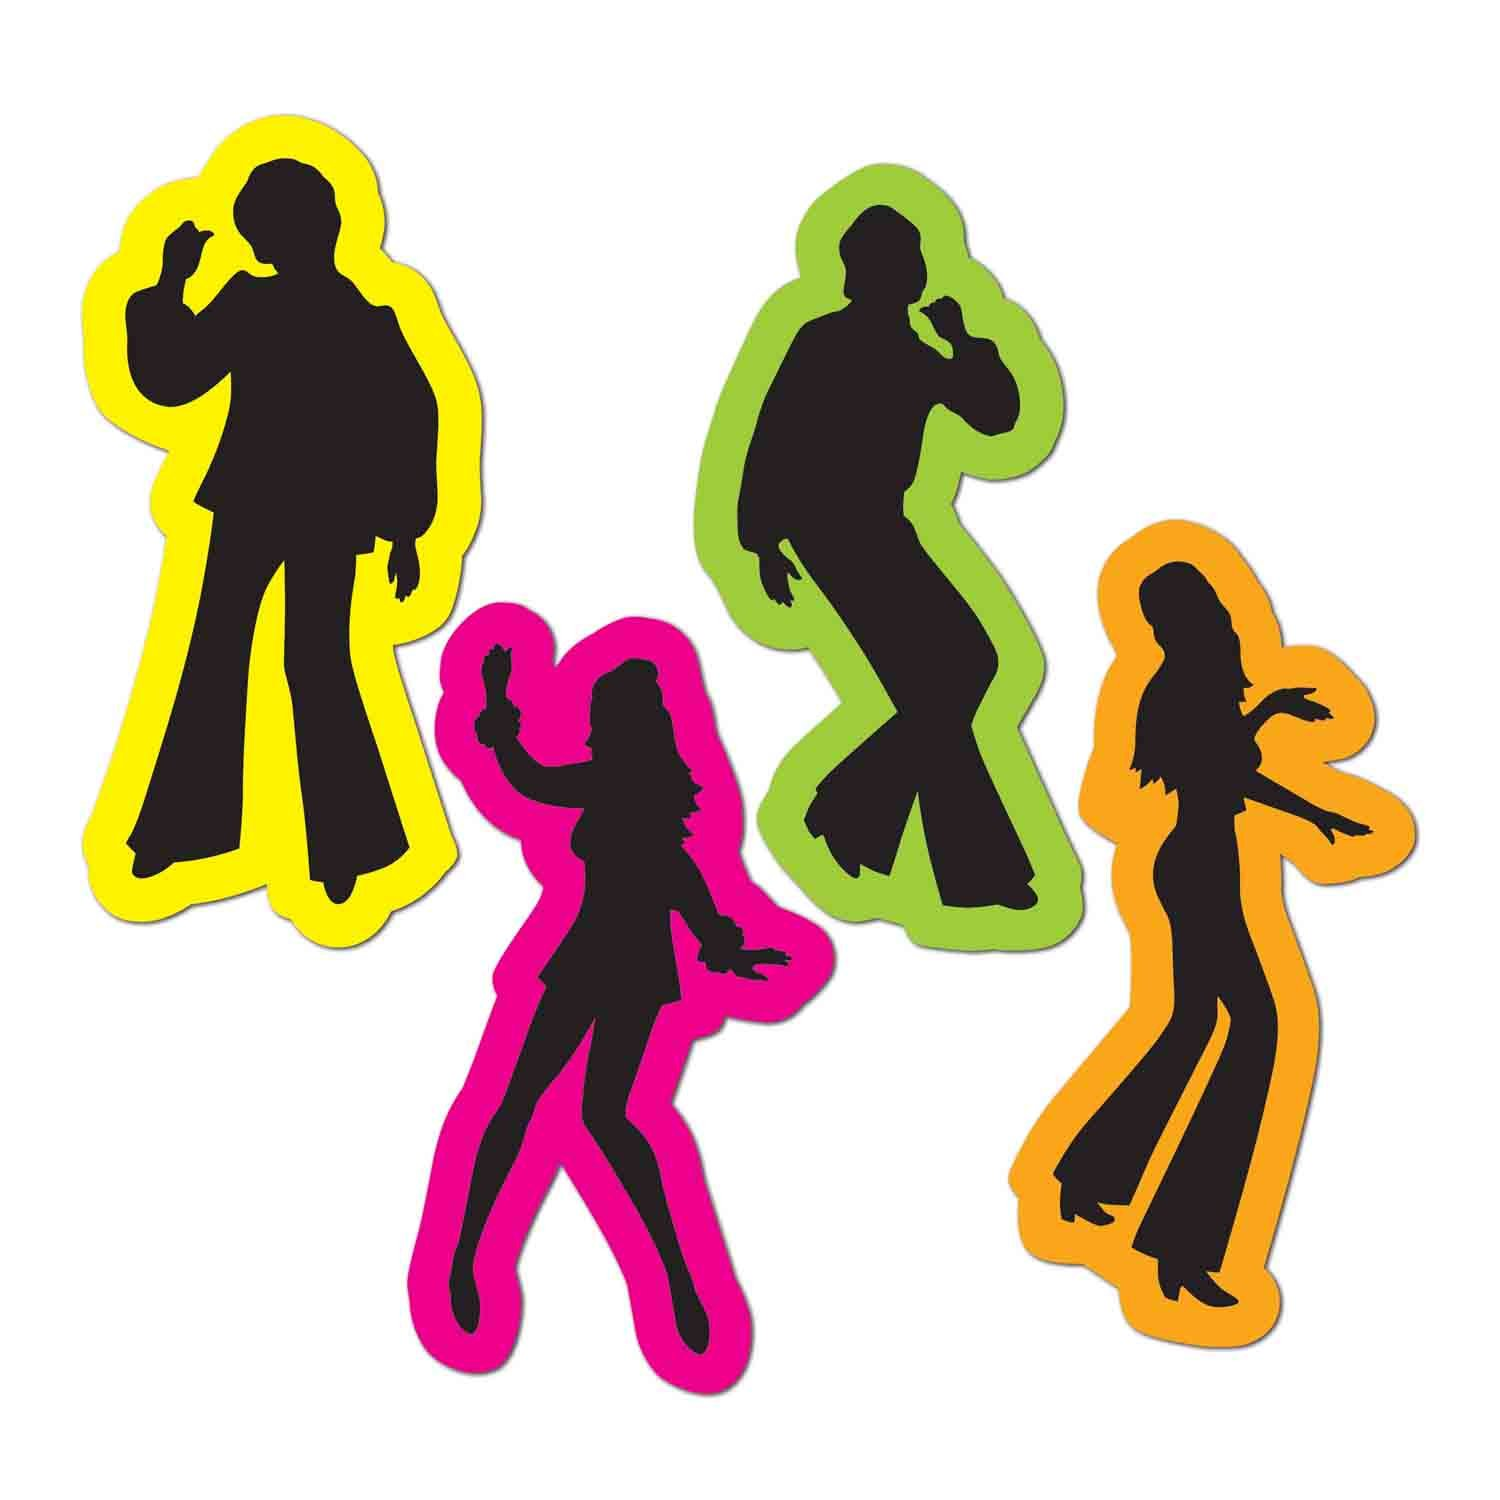 70's Retro Male & Female Black & Neon Silhouettes Cutouts